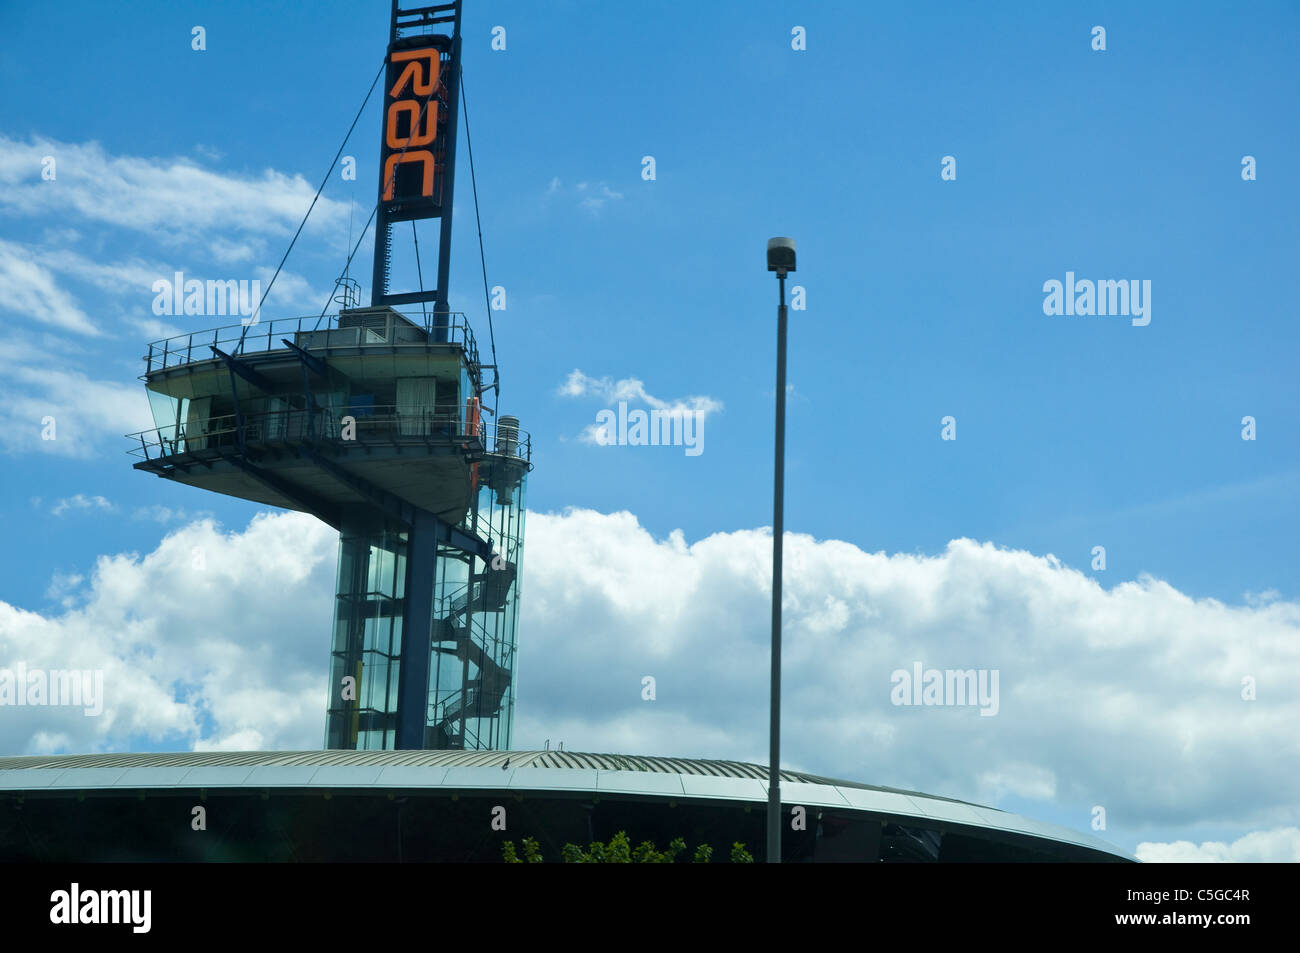 RAC watchtower / watch tower - overlooking and adjacent to the M5 motorway, keeping an eye on traffic conditions, - Stock Image